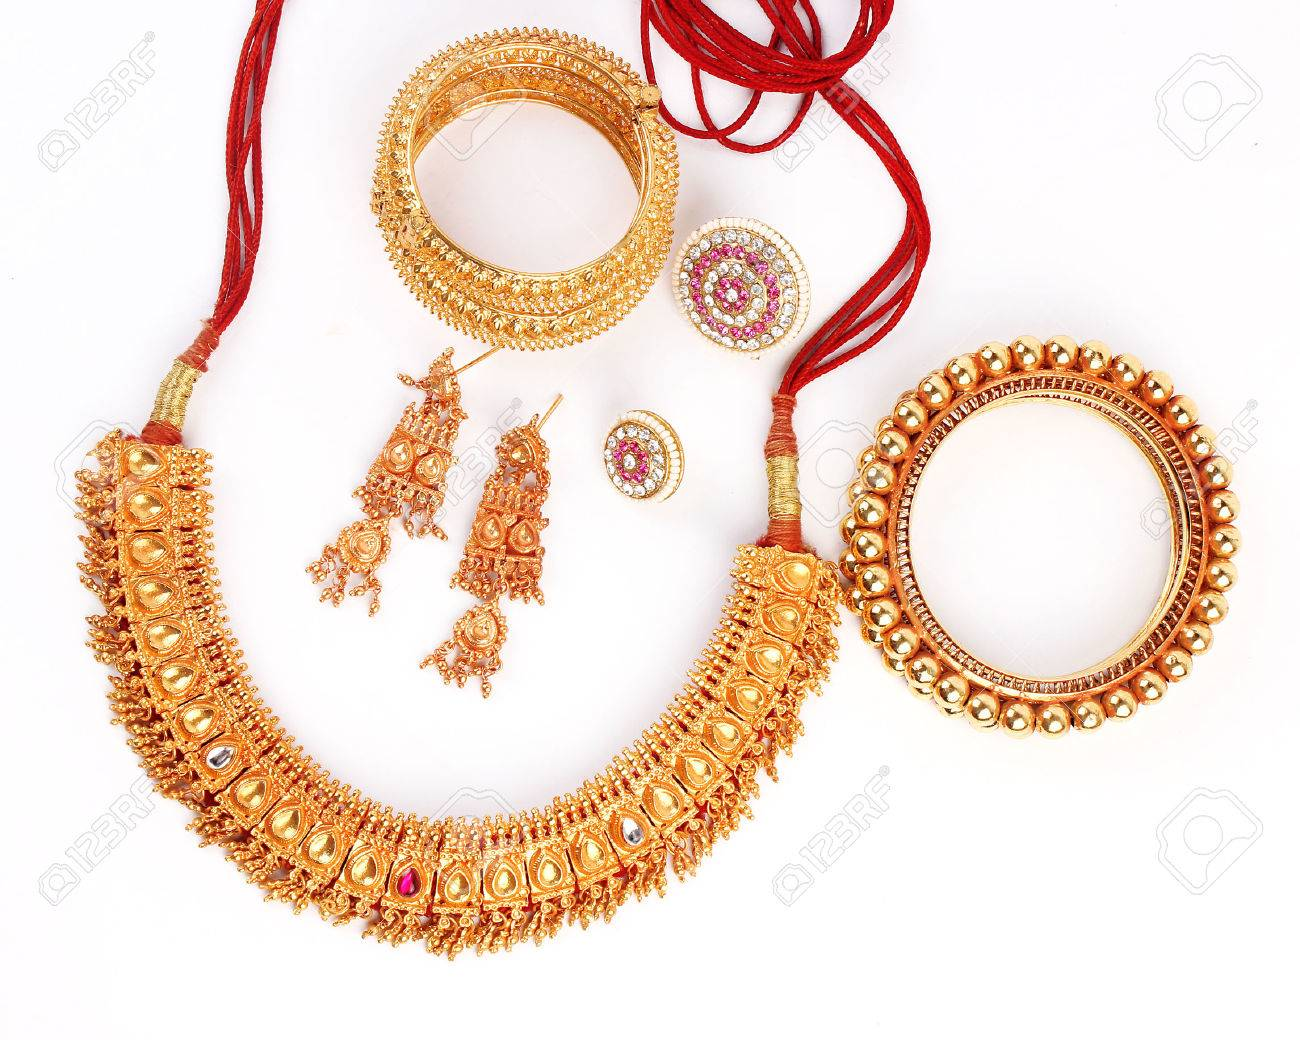 Gold Jewellery Stock Photos Royalty Free Gold Jewellery Images